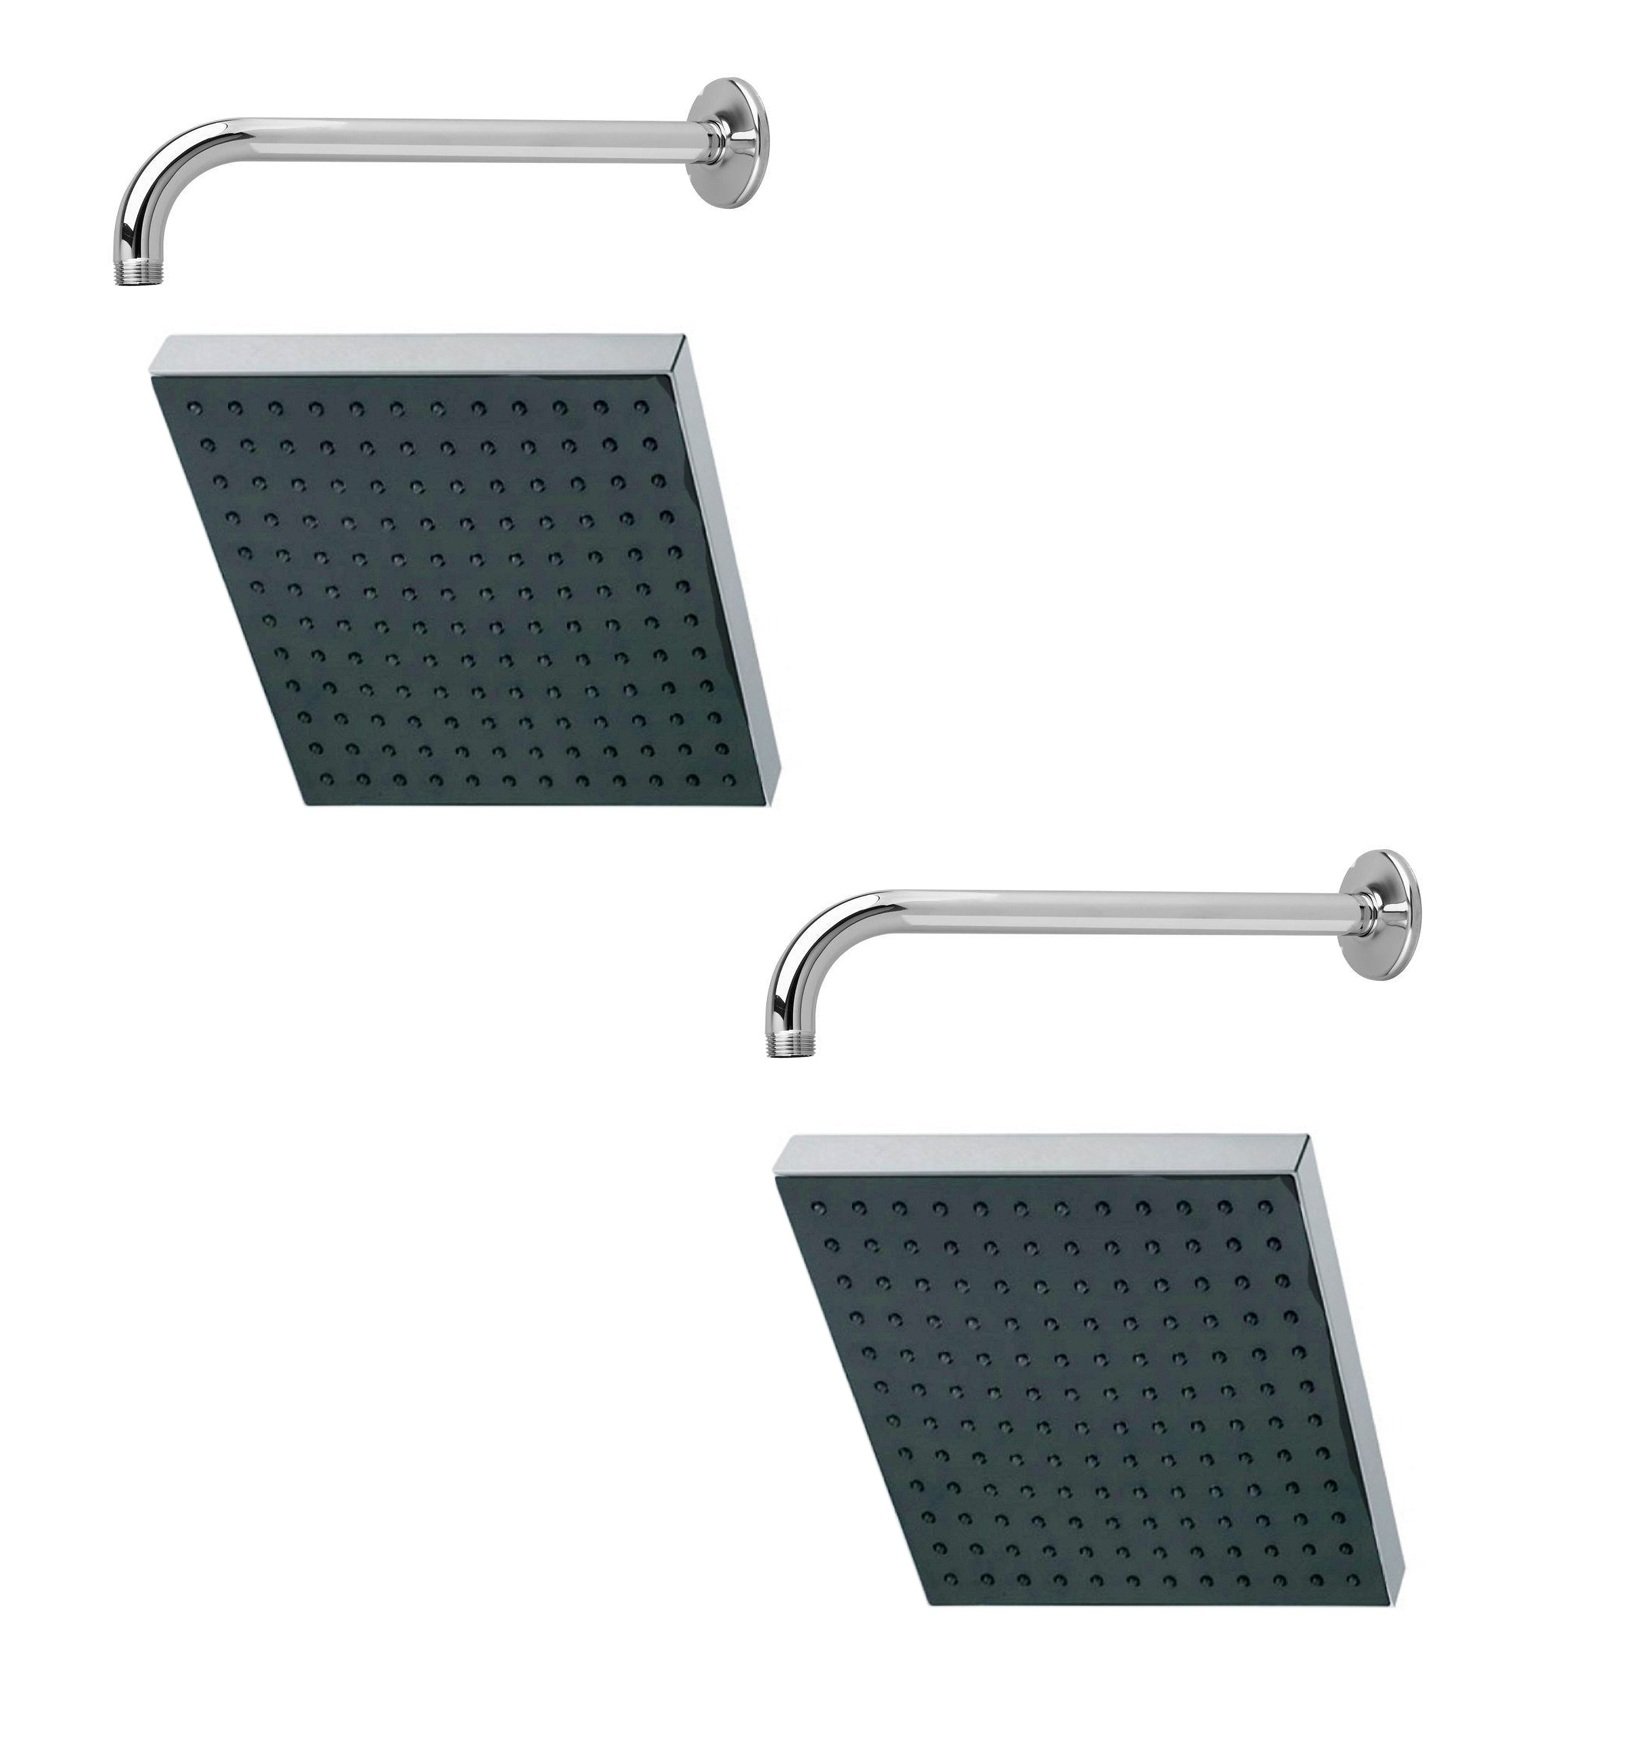 Prestige 6x6 Square Rain Shower Head with 15inch Round Arm  Pack of 2